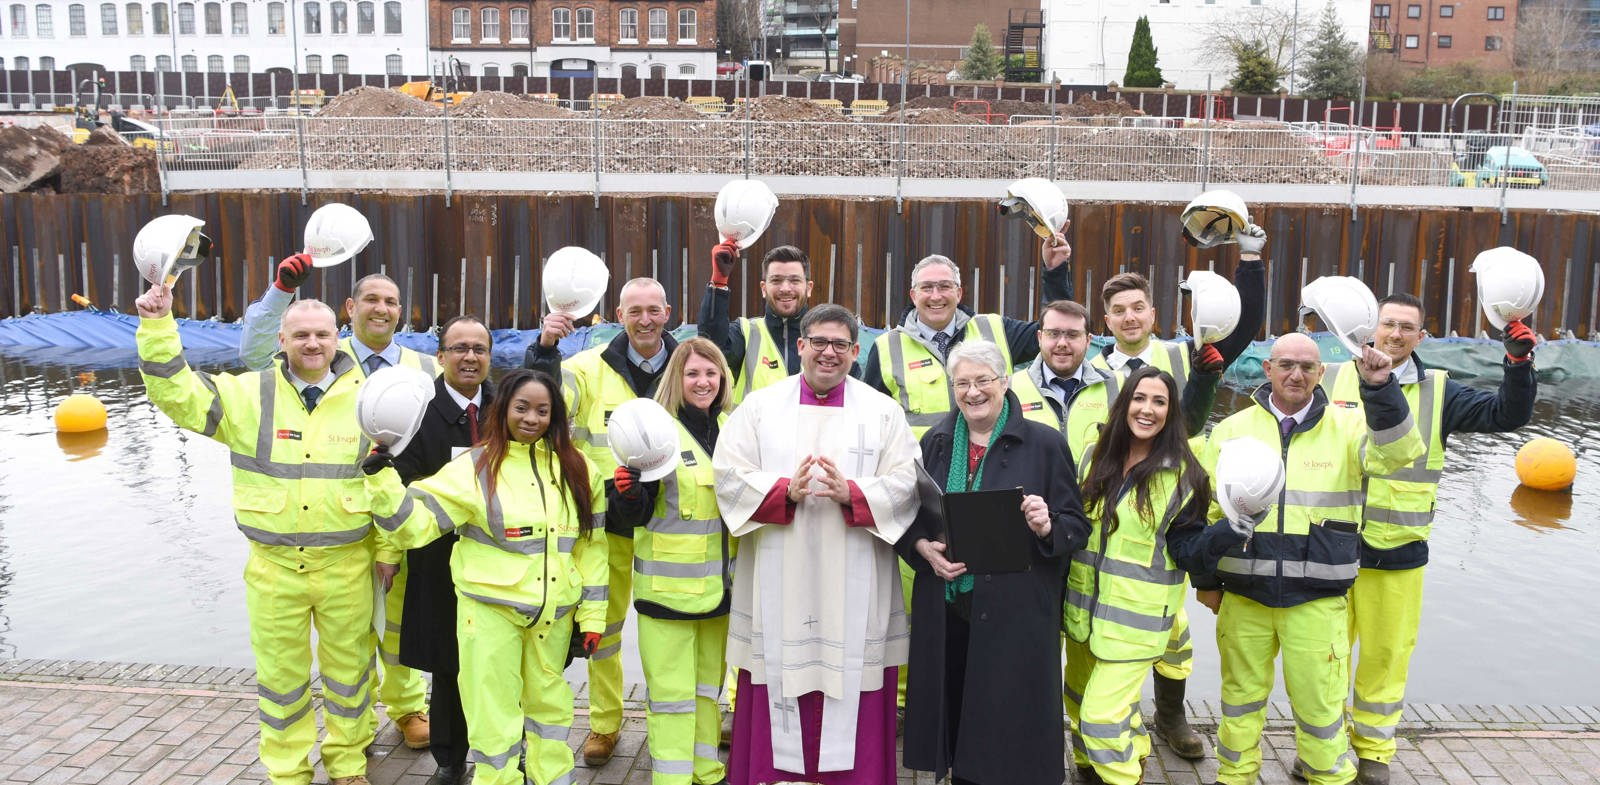 St Joseph welcomes neighbours from St Chad's Cathedral at development blessing